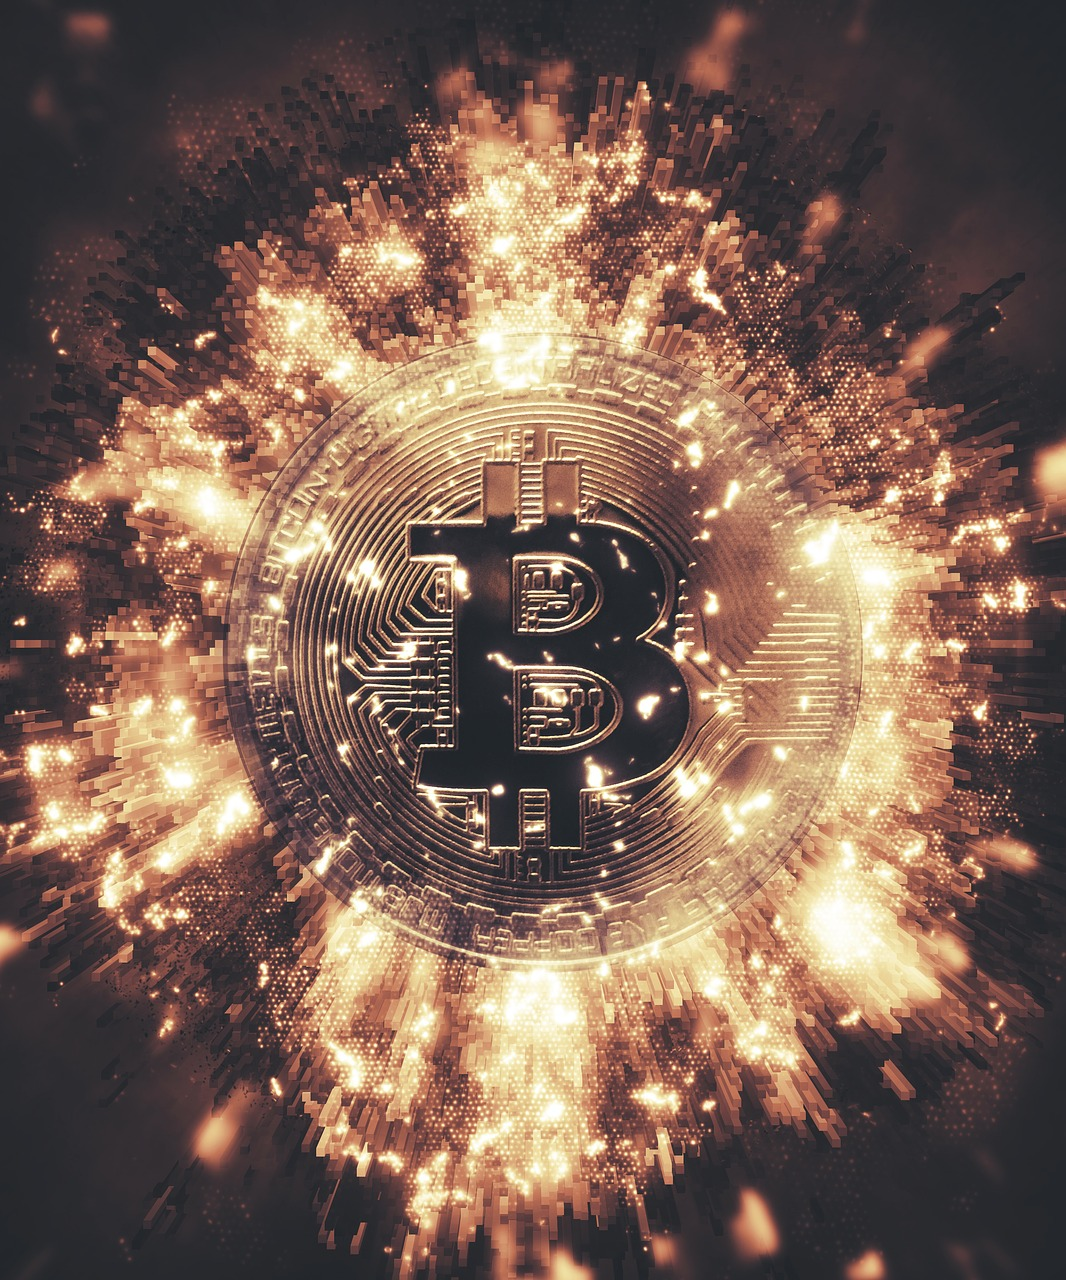 Bitcoin Cryptocurrencies Industries Article Image